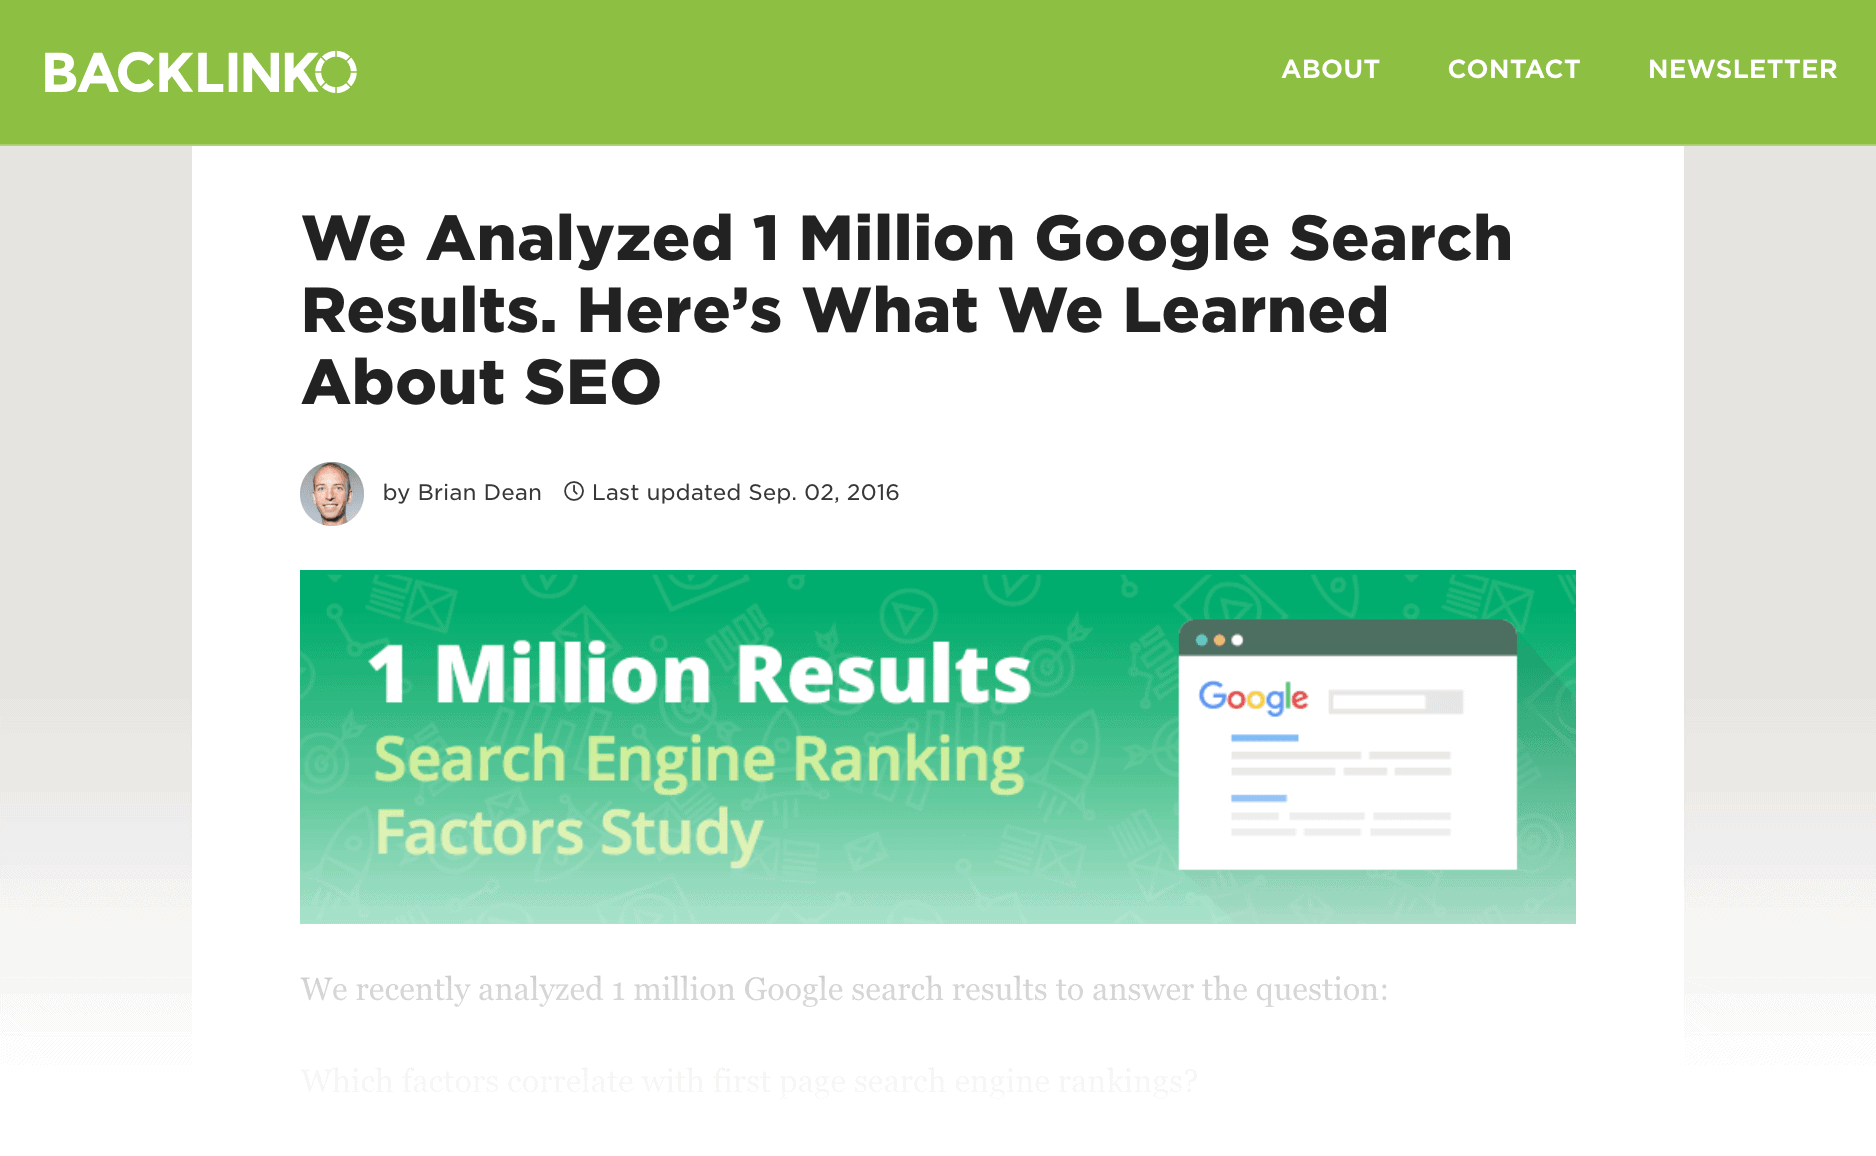 Search Engine Ranking post